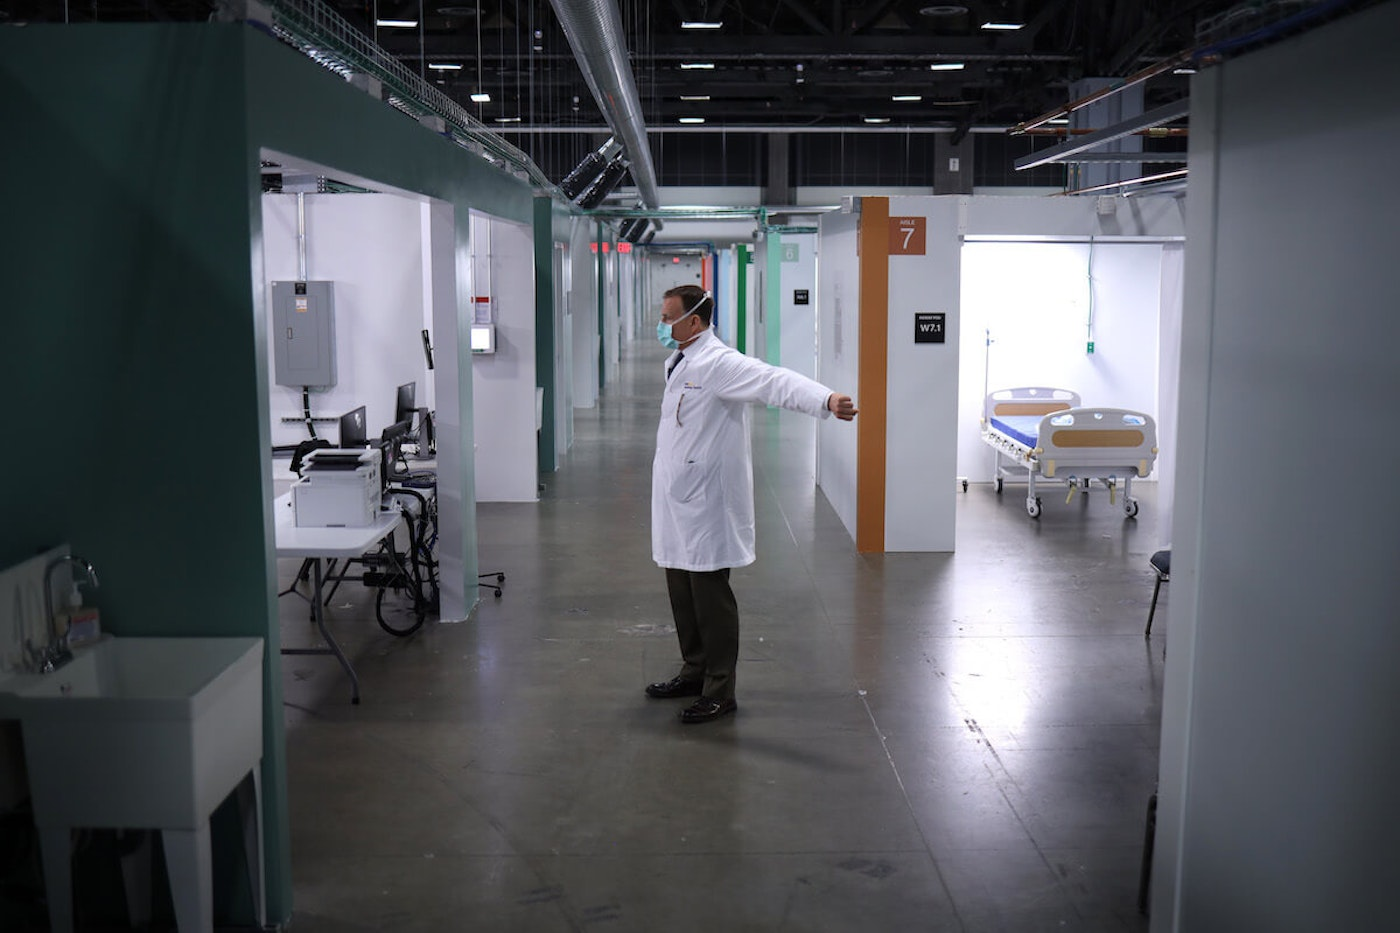 Washington DC Convention Center To Turn Into Facility To Treat COVID-19 Patients